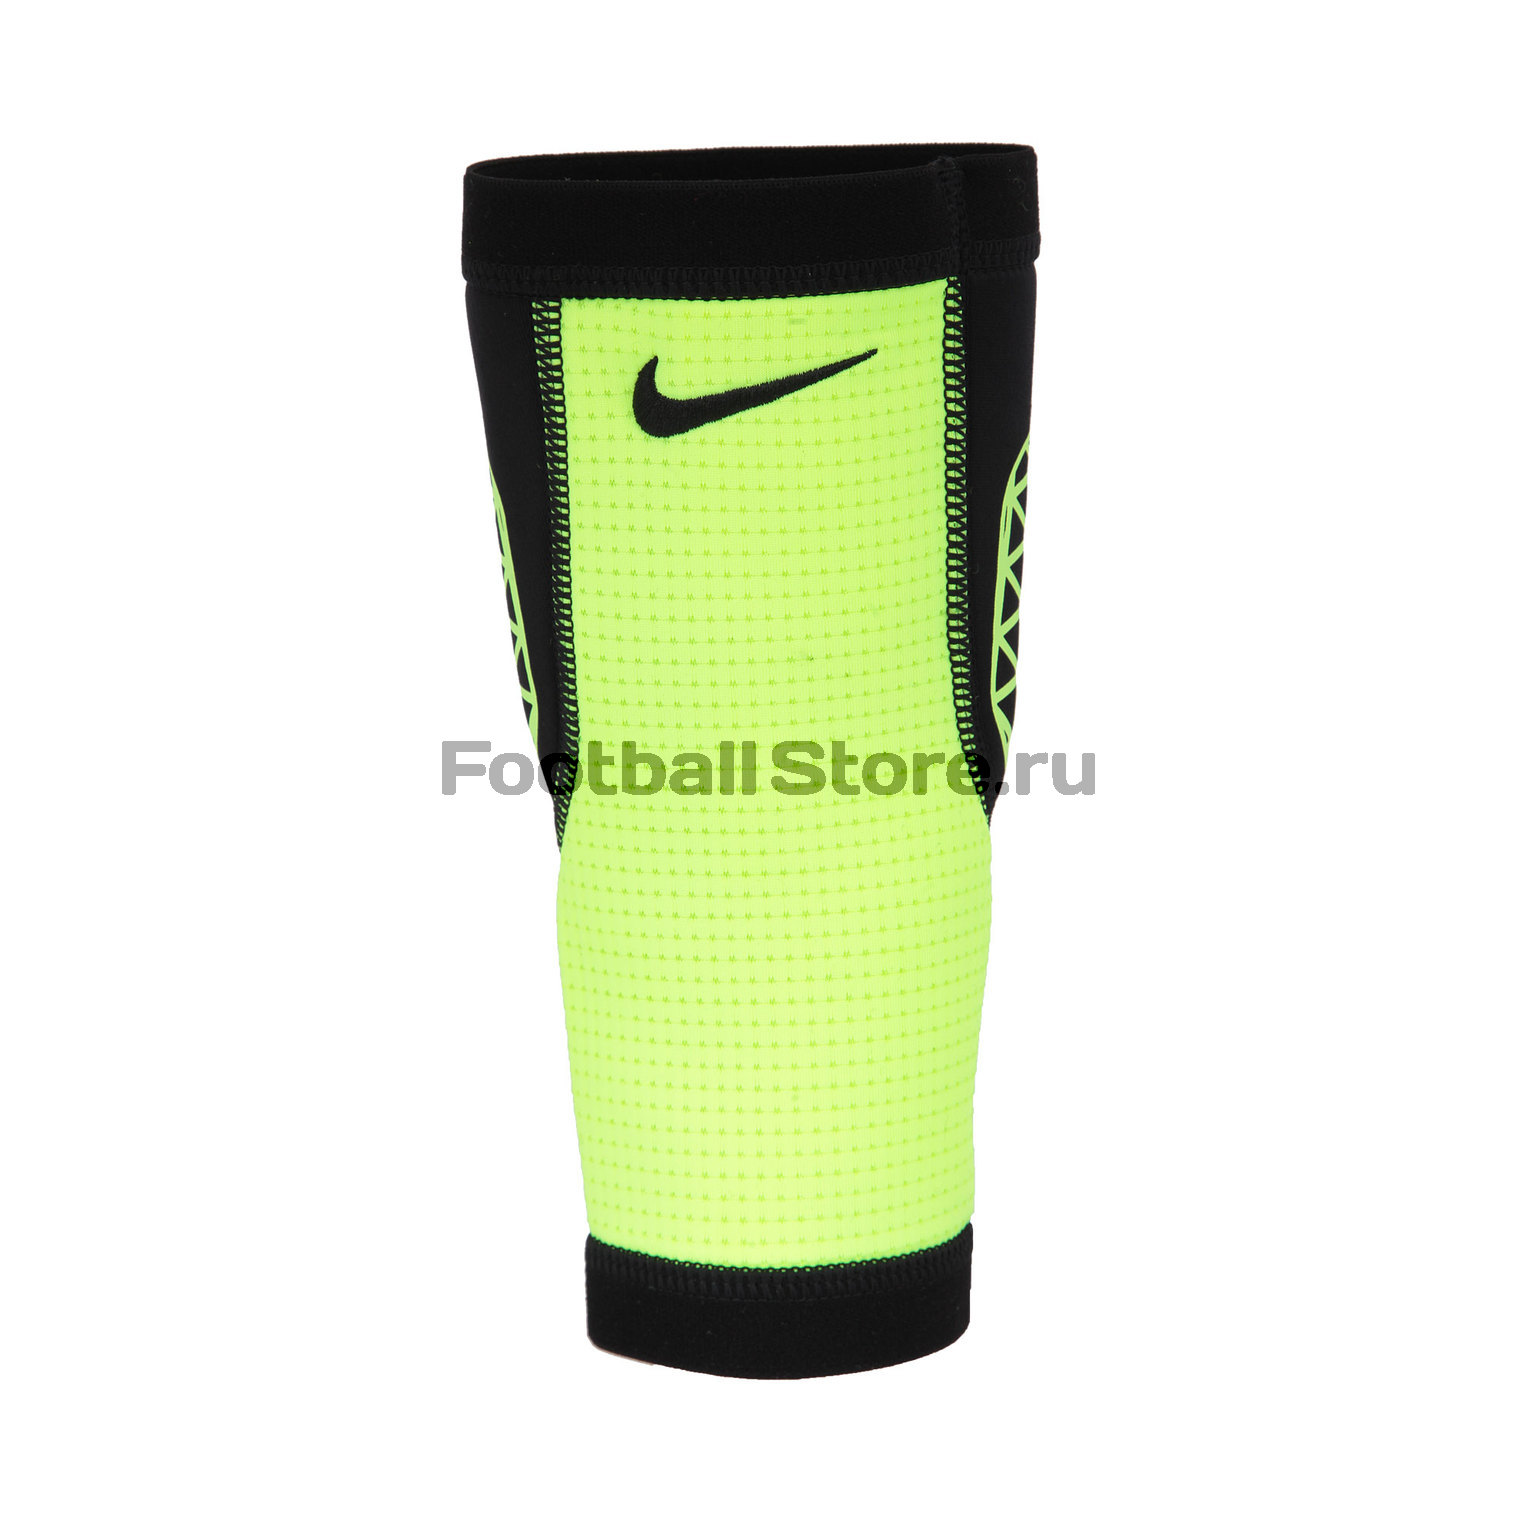 Медицина Nike Бандаж на голень Nike Pro Combat Calf N.MS.32.023 650nm 5mw focusable red line laser module laser generator diode